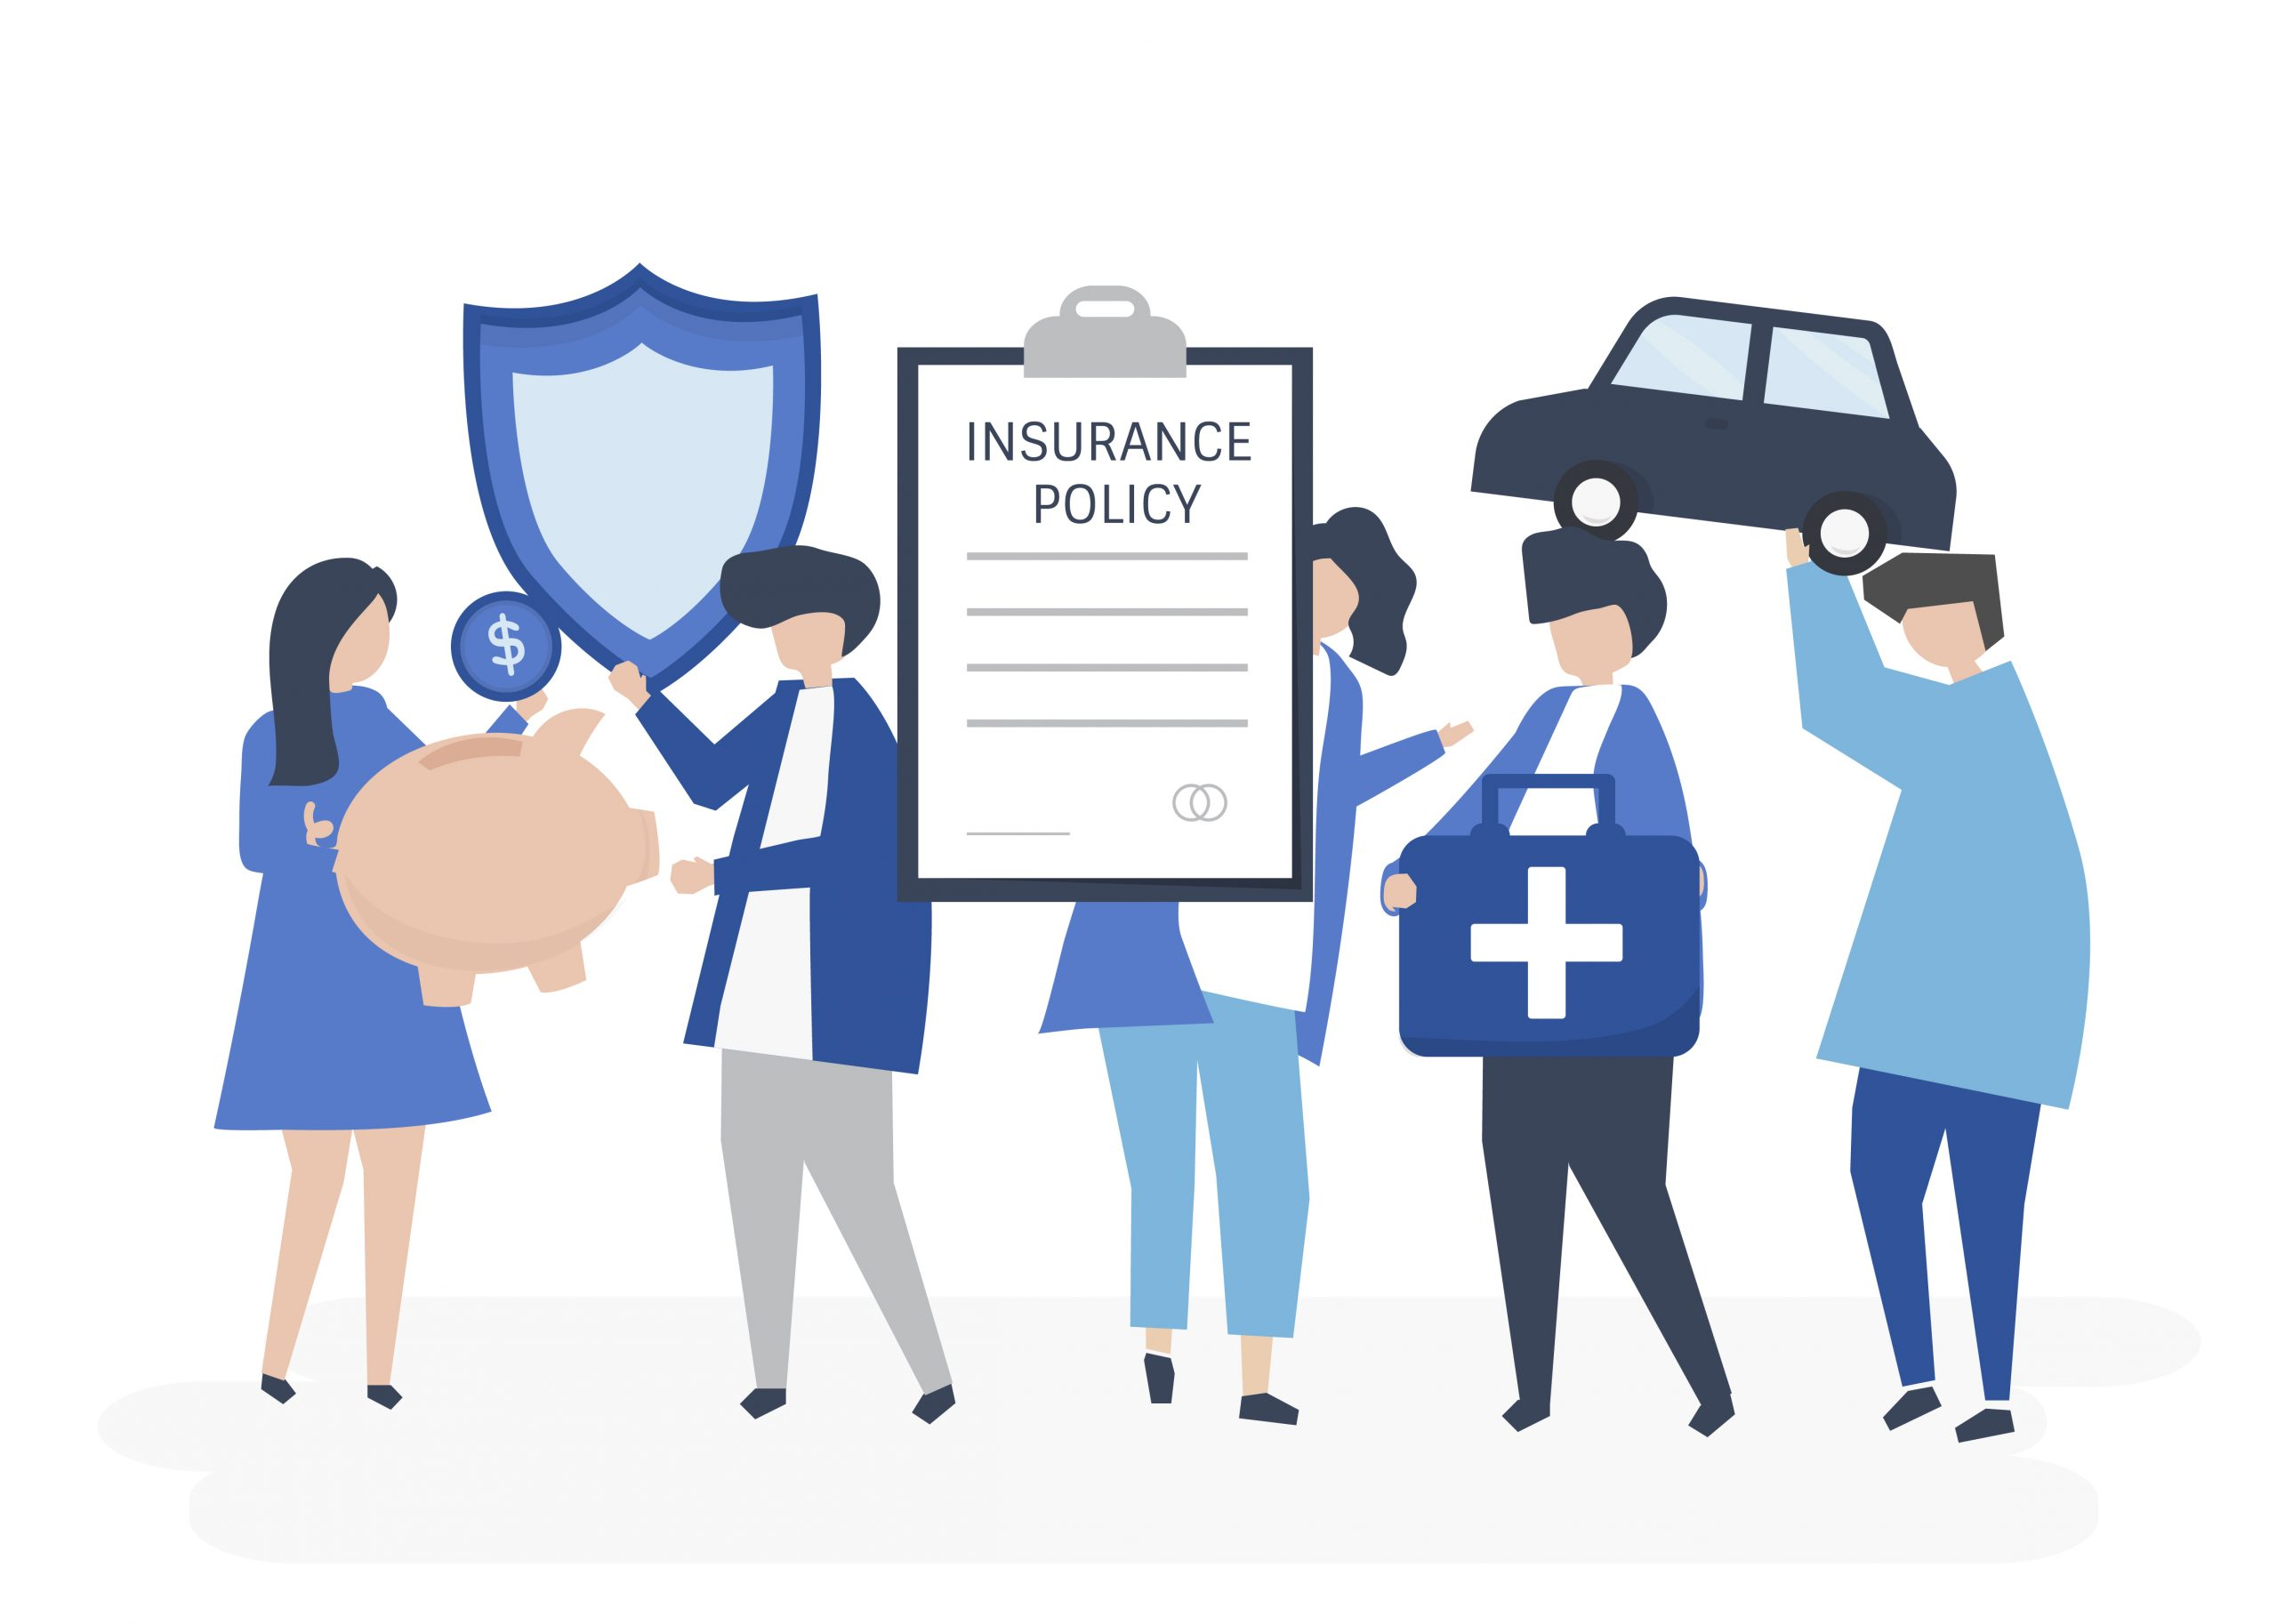 vector image of people holding insurance papers - material fact in an insurance contract